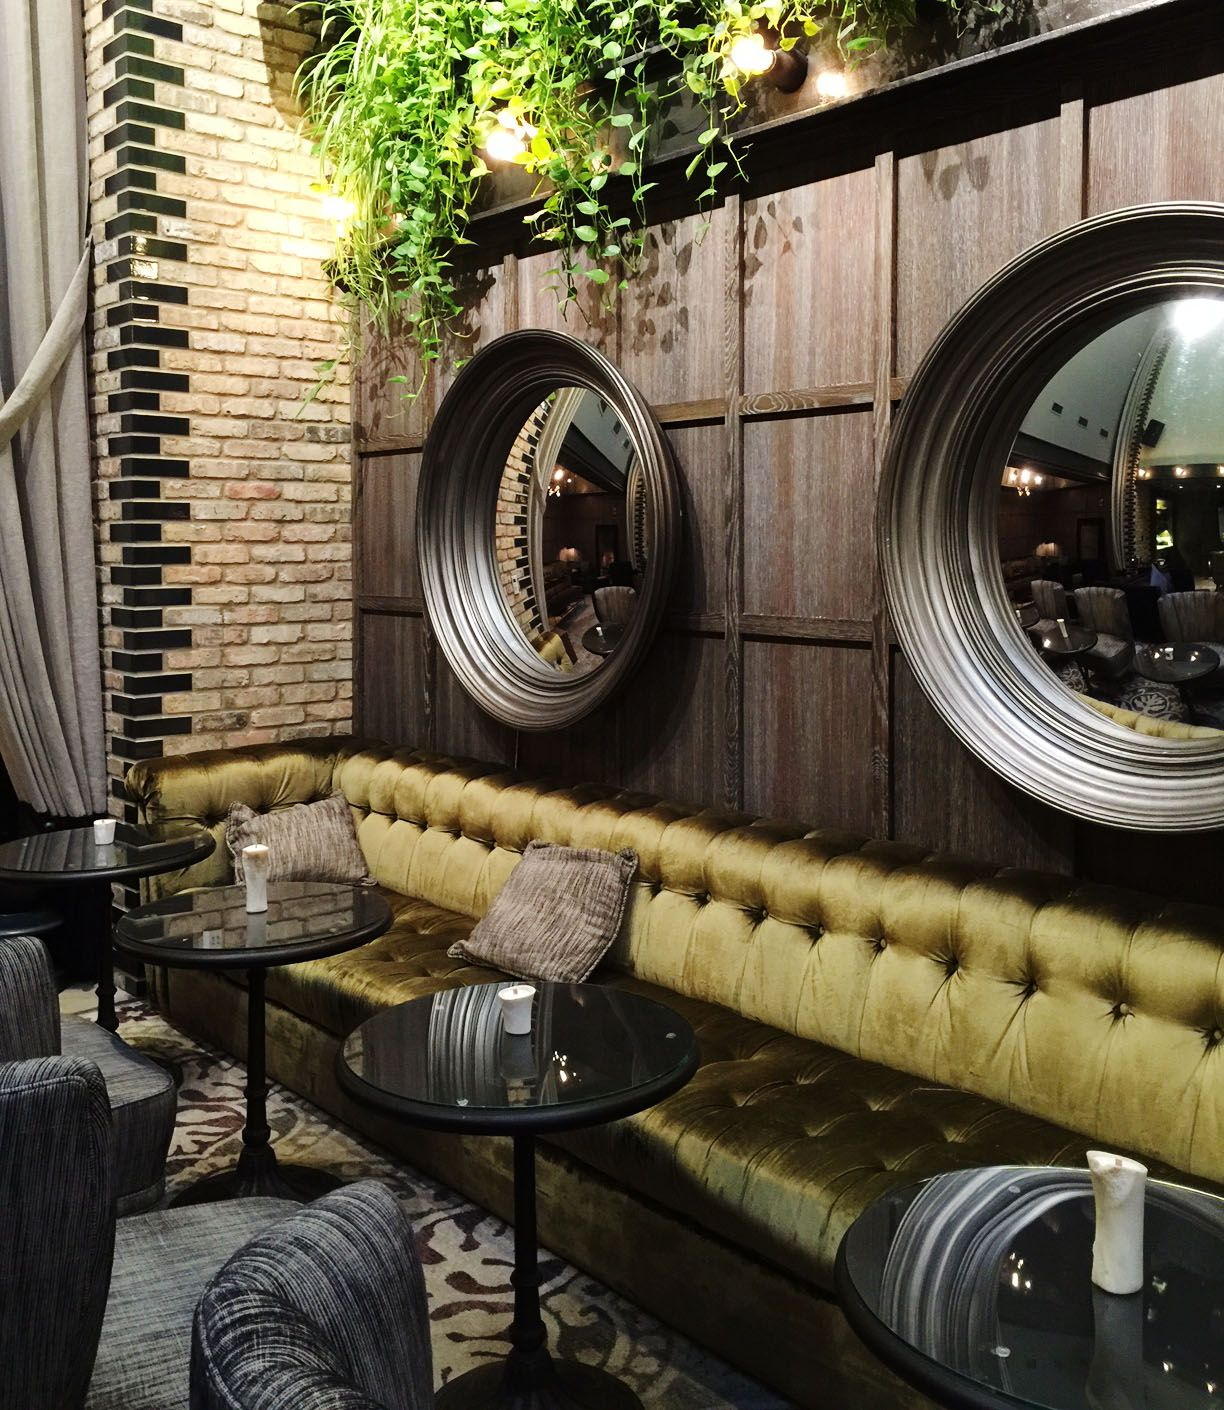 Charlie Bax soy wax bone candles with wooden wicks adorn the lounge area at The Thompson Hotel in Chicago.